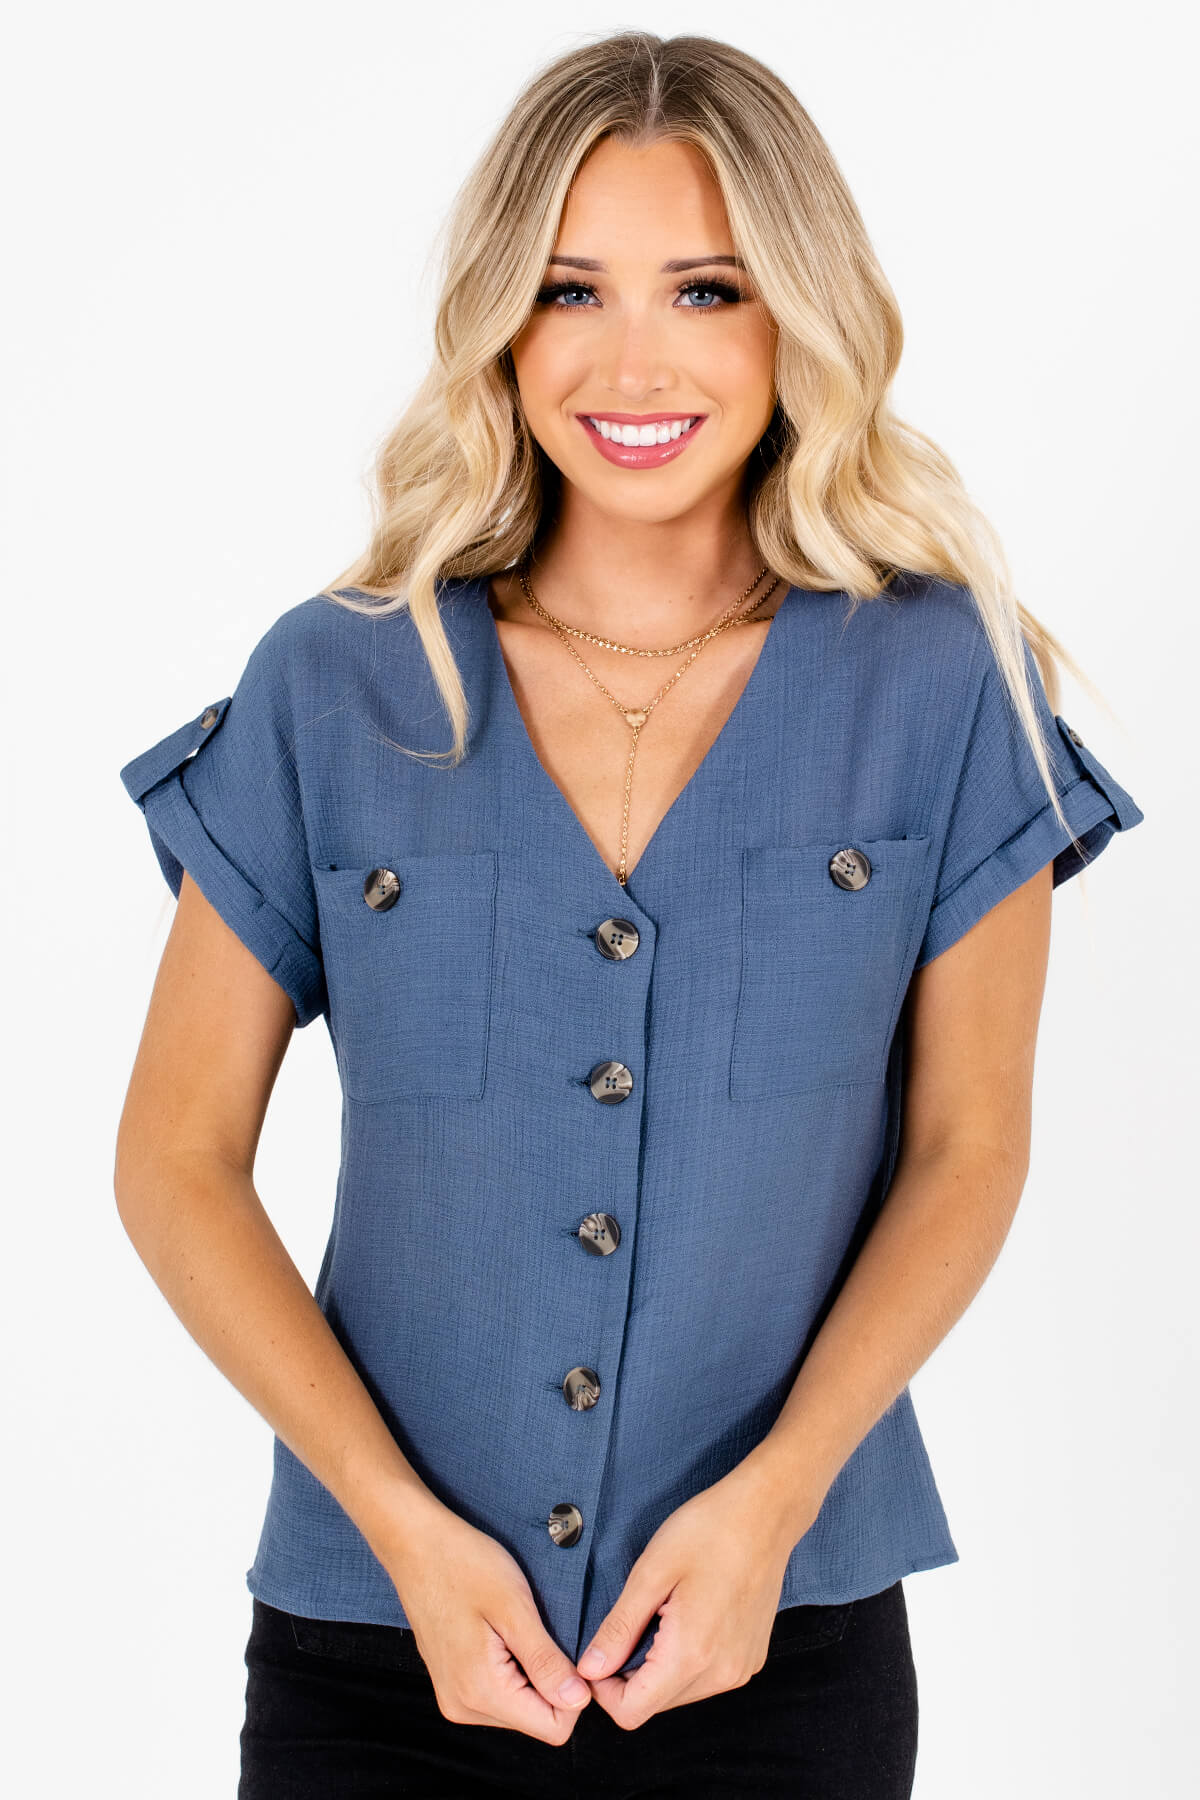 Slate Blue Button-Up Front Boutique Tops for Women